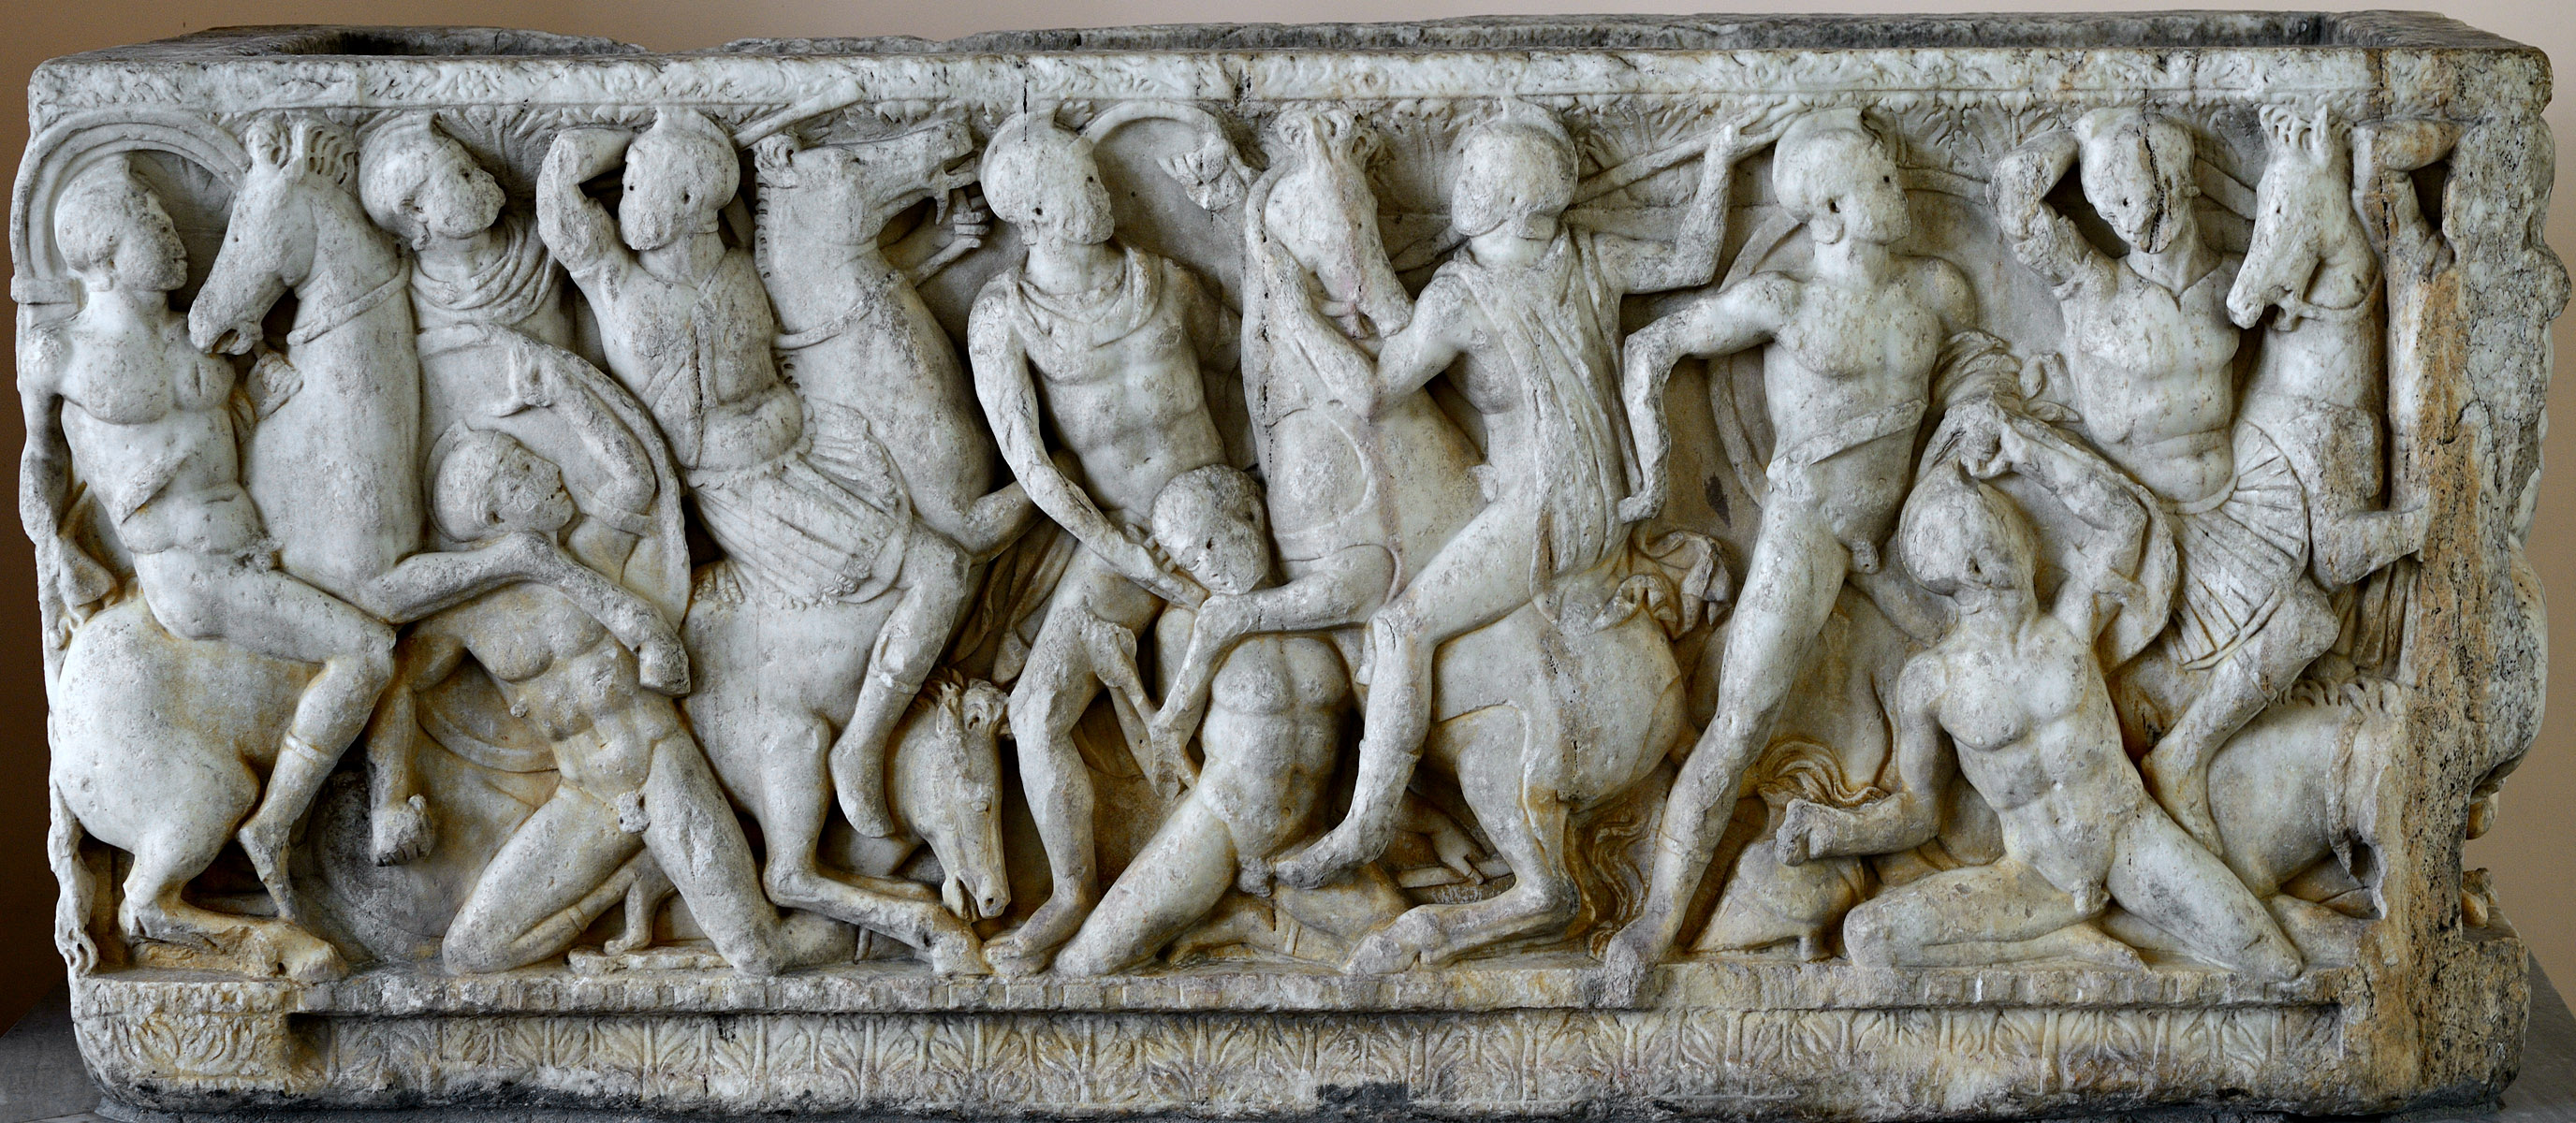 Sarcophagus with a battle scene (front panel). Attic work. Early 3rd cent. CE. Marble. Ca 240 CE. Inv. No. A.521. Saint Petersburg, The State Hermitage Museum